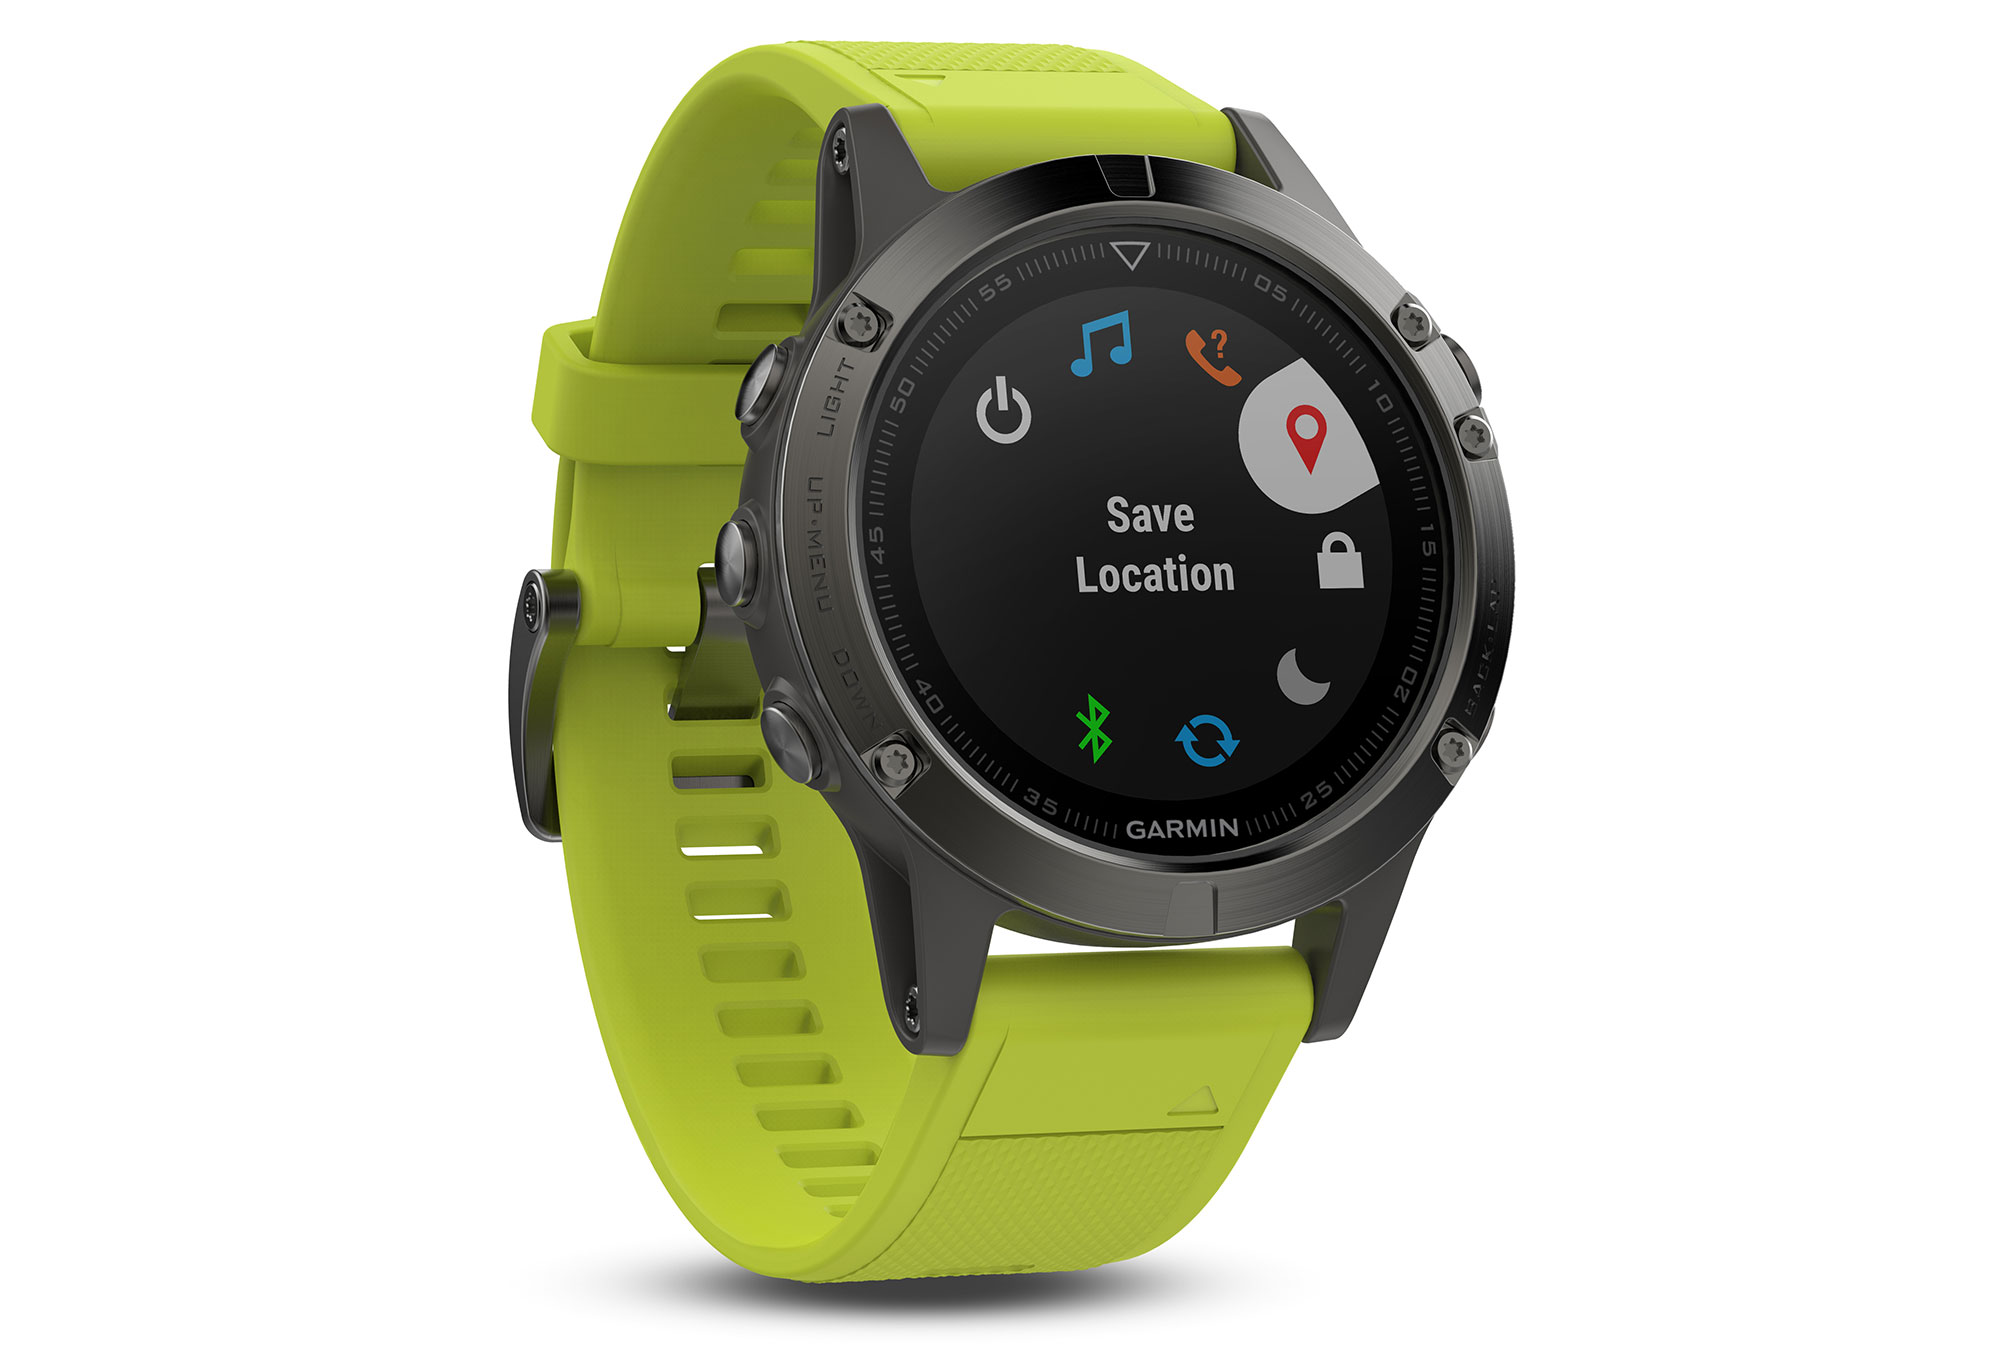 montre gps garmin fenix 5 hr gris jaune. Black Bedroom Furniture Sets. Home Design Ideas